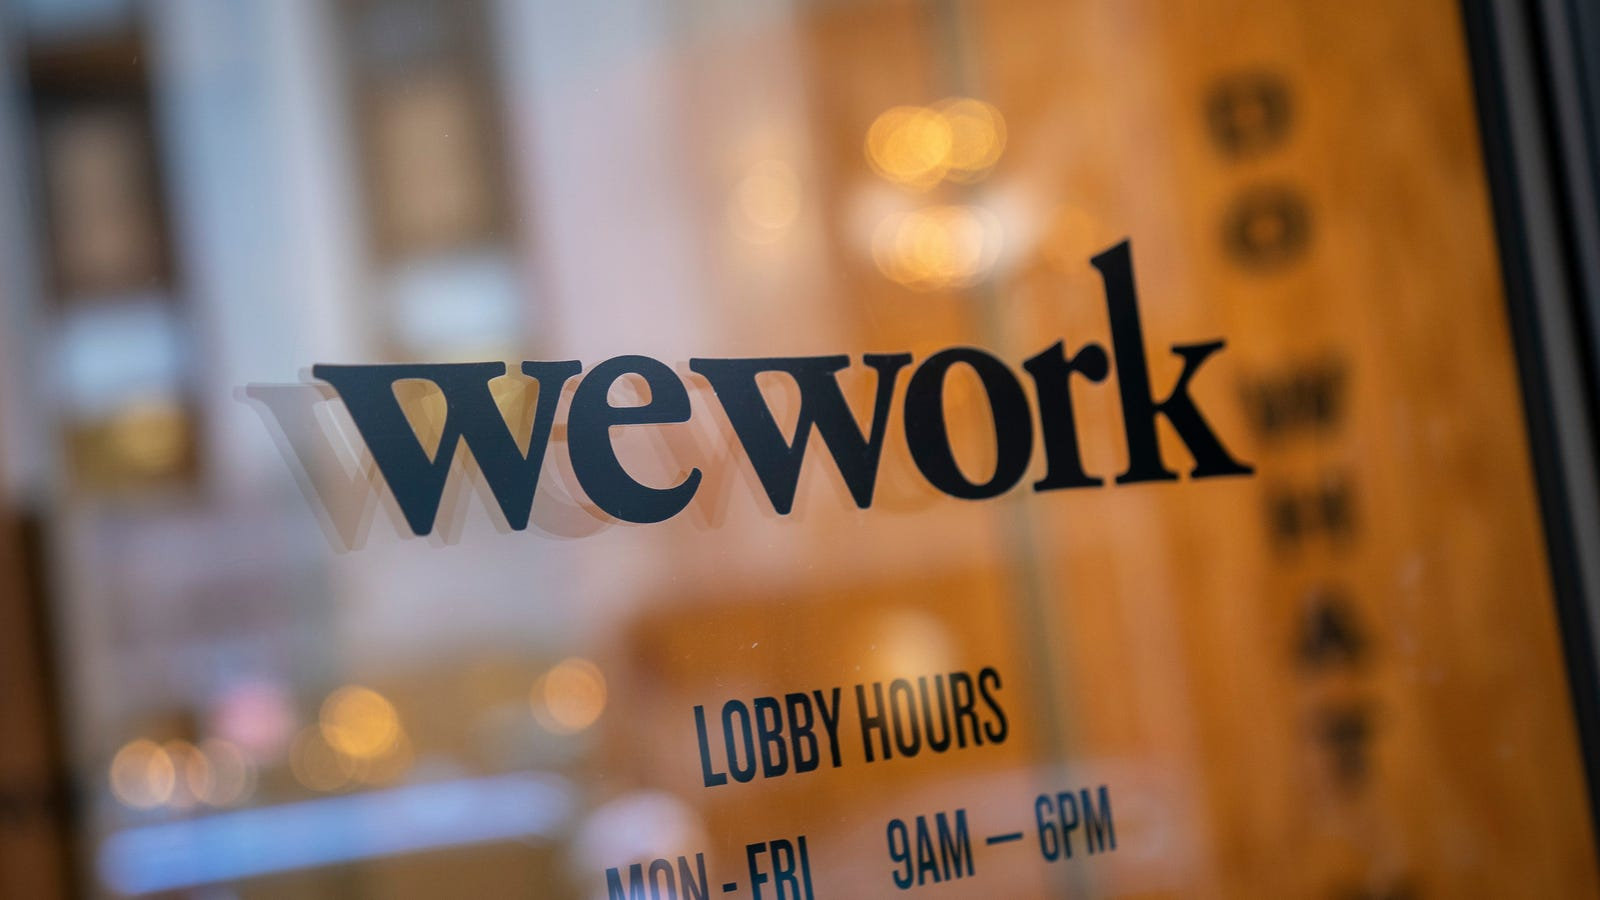 WeWork Is Exposing an 'Astronomical Amount' of Data on Poorly Protected Wifi Network